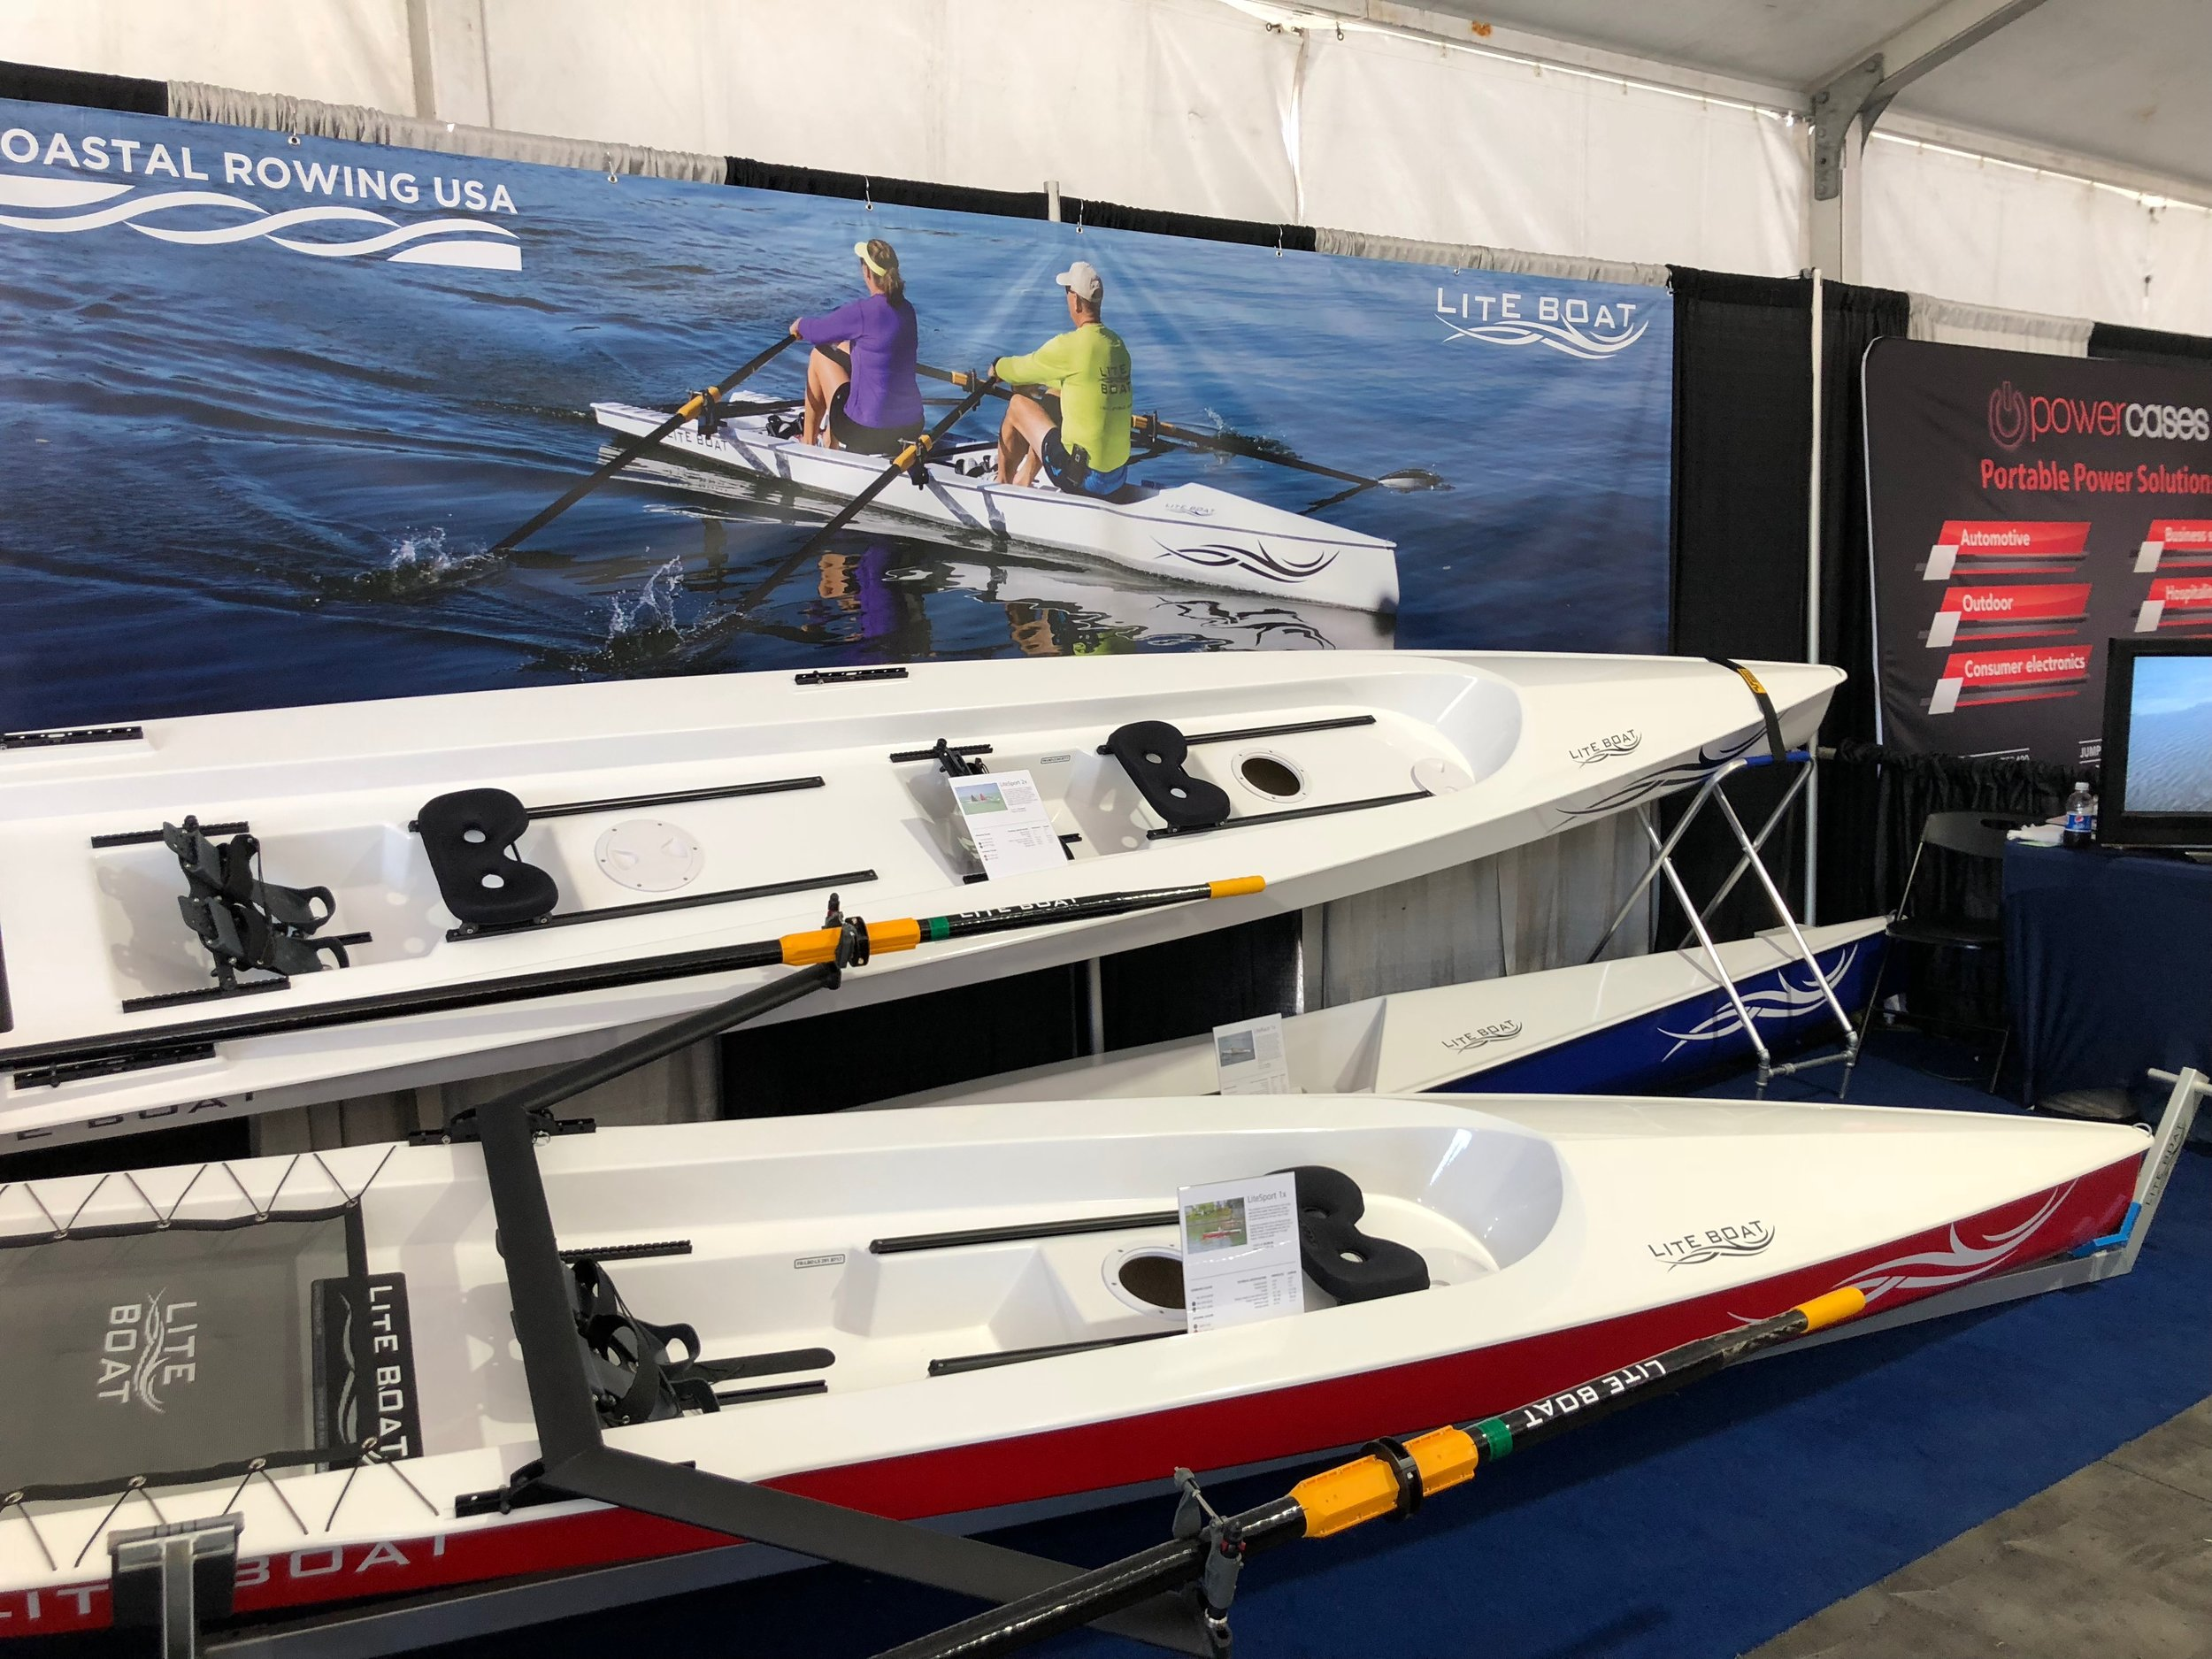 - We had a great time at the Suncoast Boat Show at Marina Jacks April 20-22. It was a fantastic chance to see these great boats in person. We met many wonderful people who were very interested in the LiteBoats. We look forward to seeing them for a demo row, and out on the waters of Sarasota enjoying their new boats very soon!